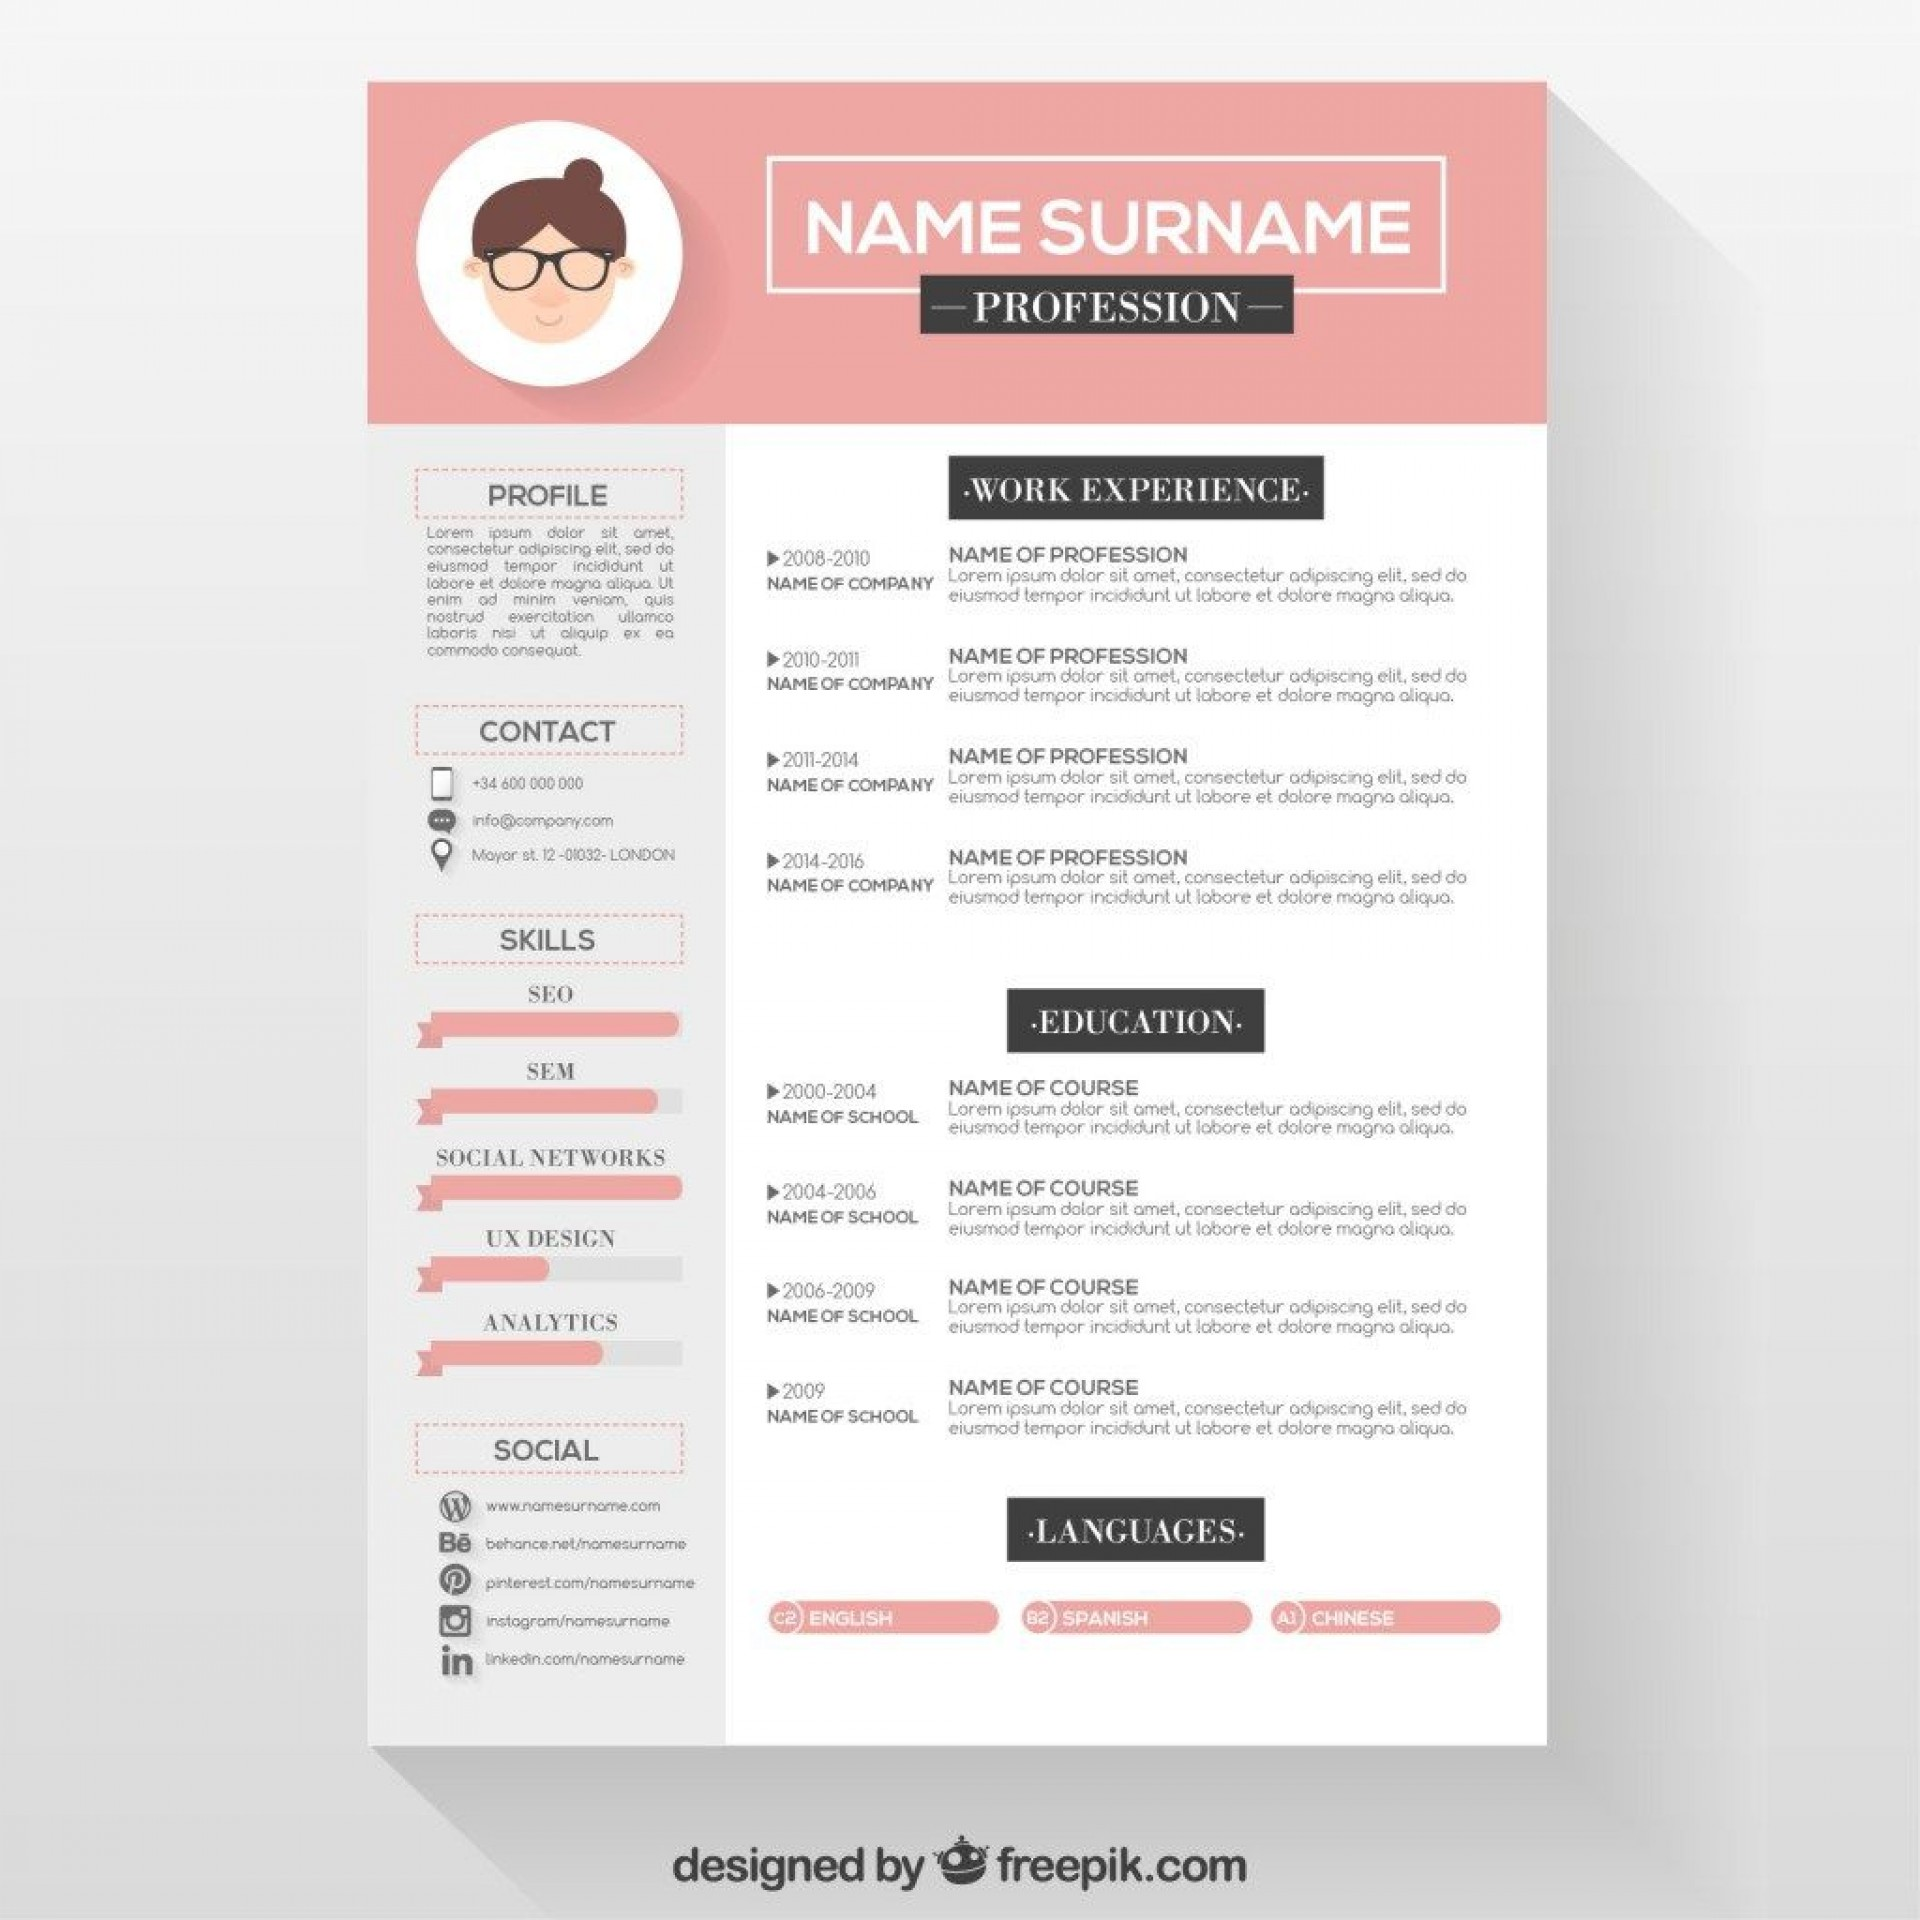 005 Stunning Download Resume Template Free Picture  For Mac Best Creative Professional Microsoft Word1920